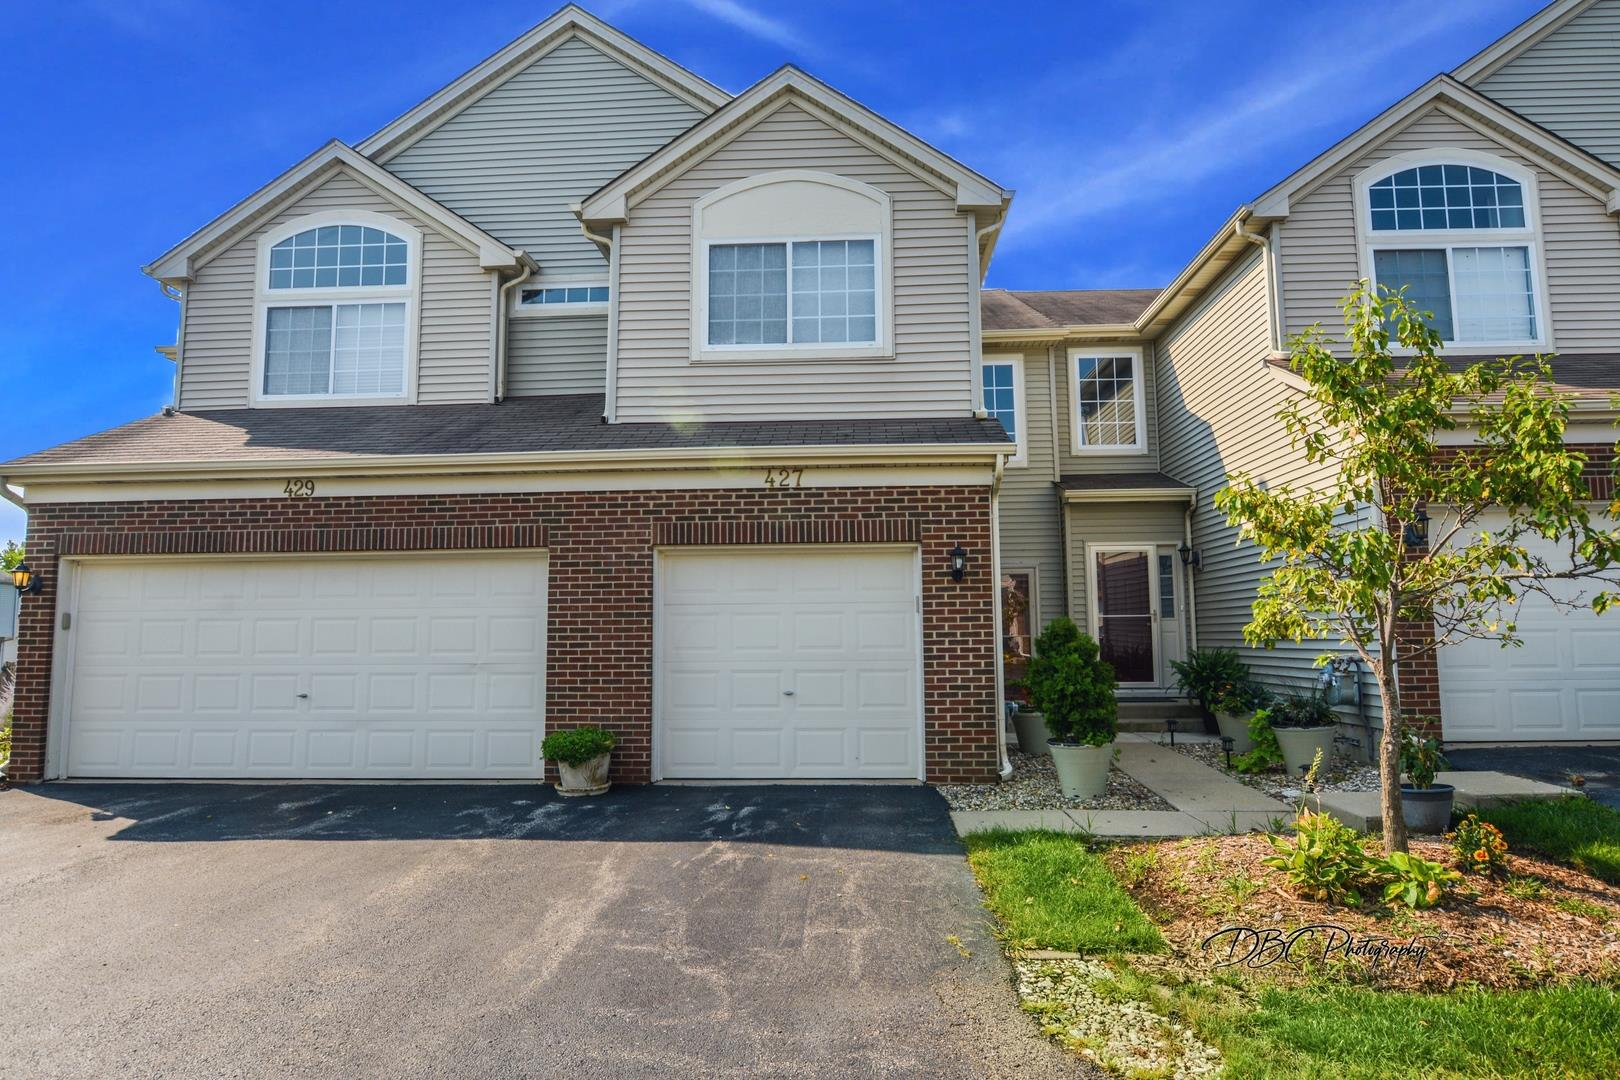 427 N Tower Drive #427, Hainesville, IL 60030 - #: 10836272